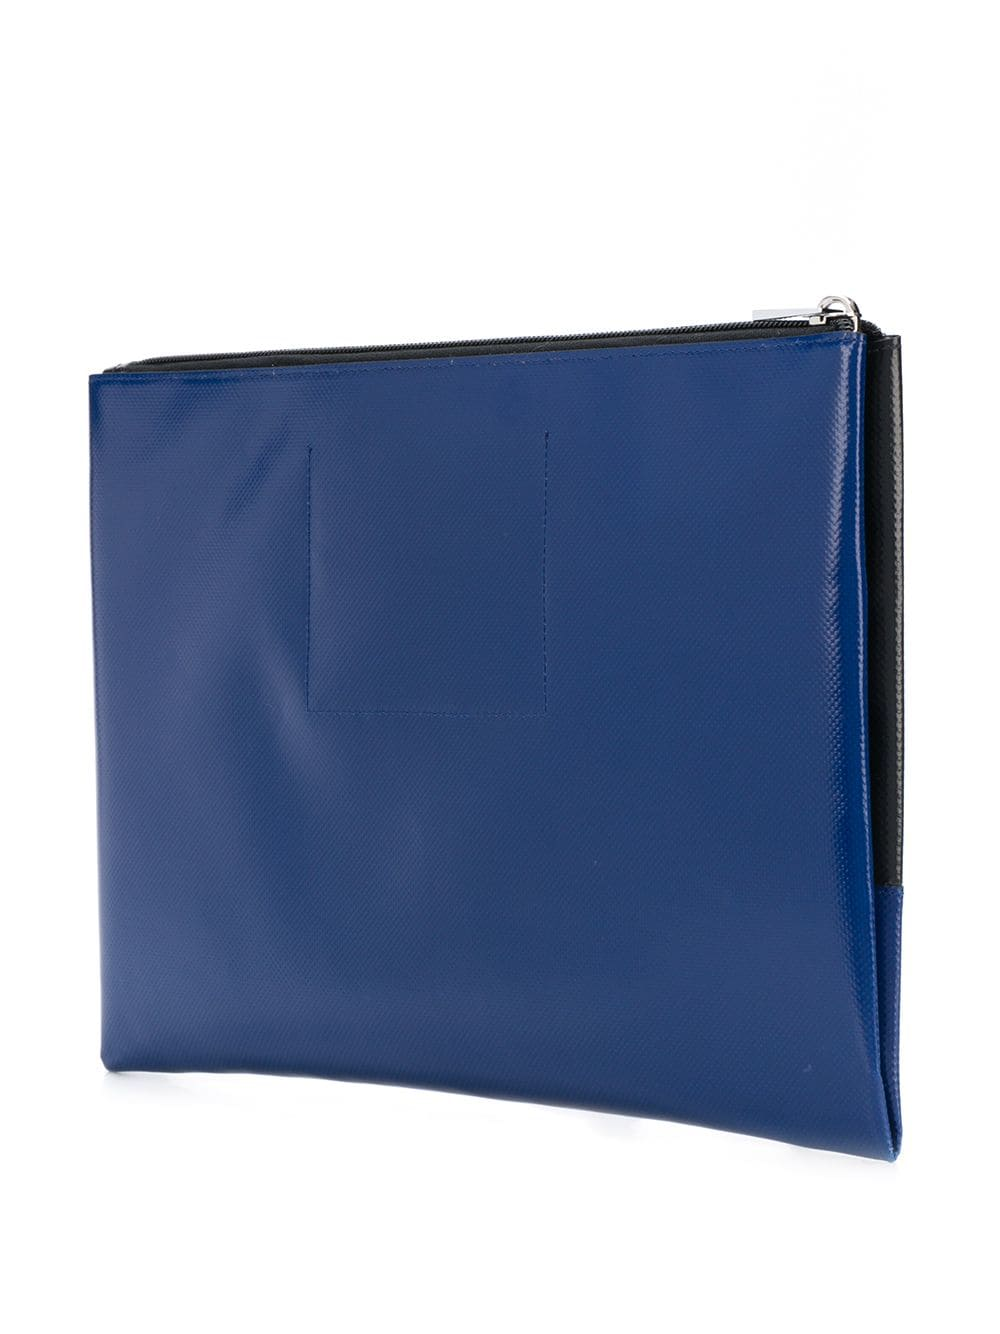 BI-COLOR CLUTCH MARNI | Bags | PHMI0001A2 P3572ZL811